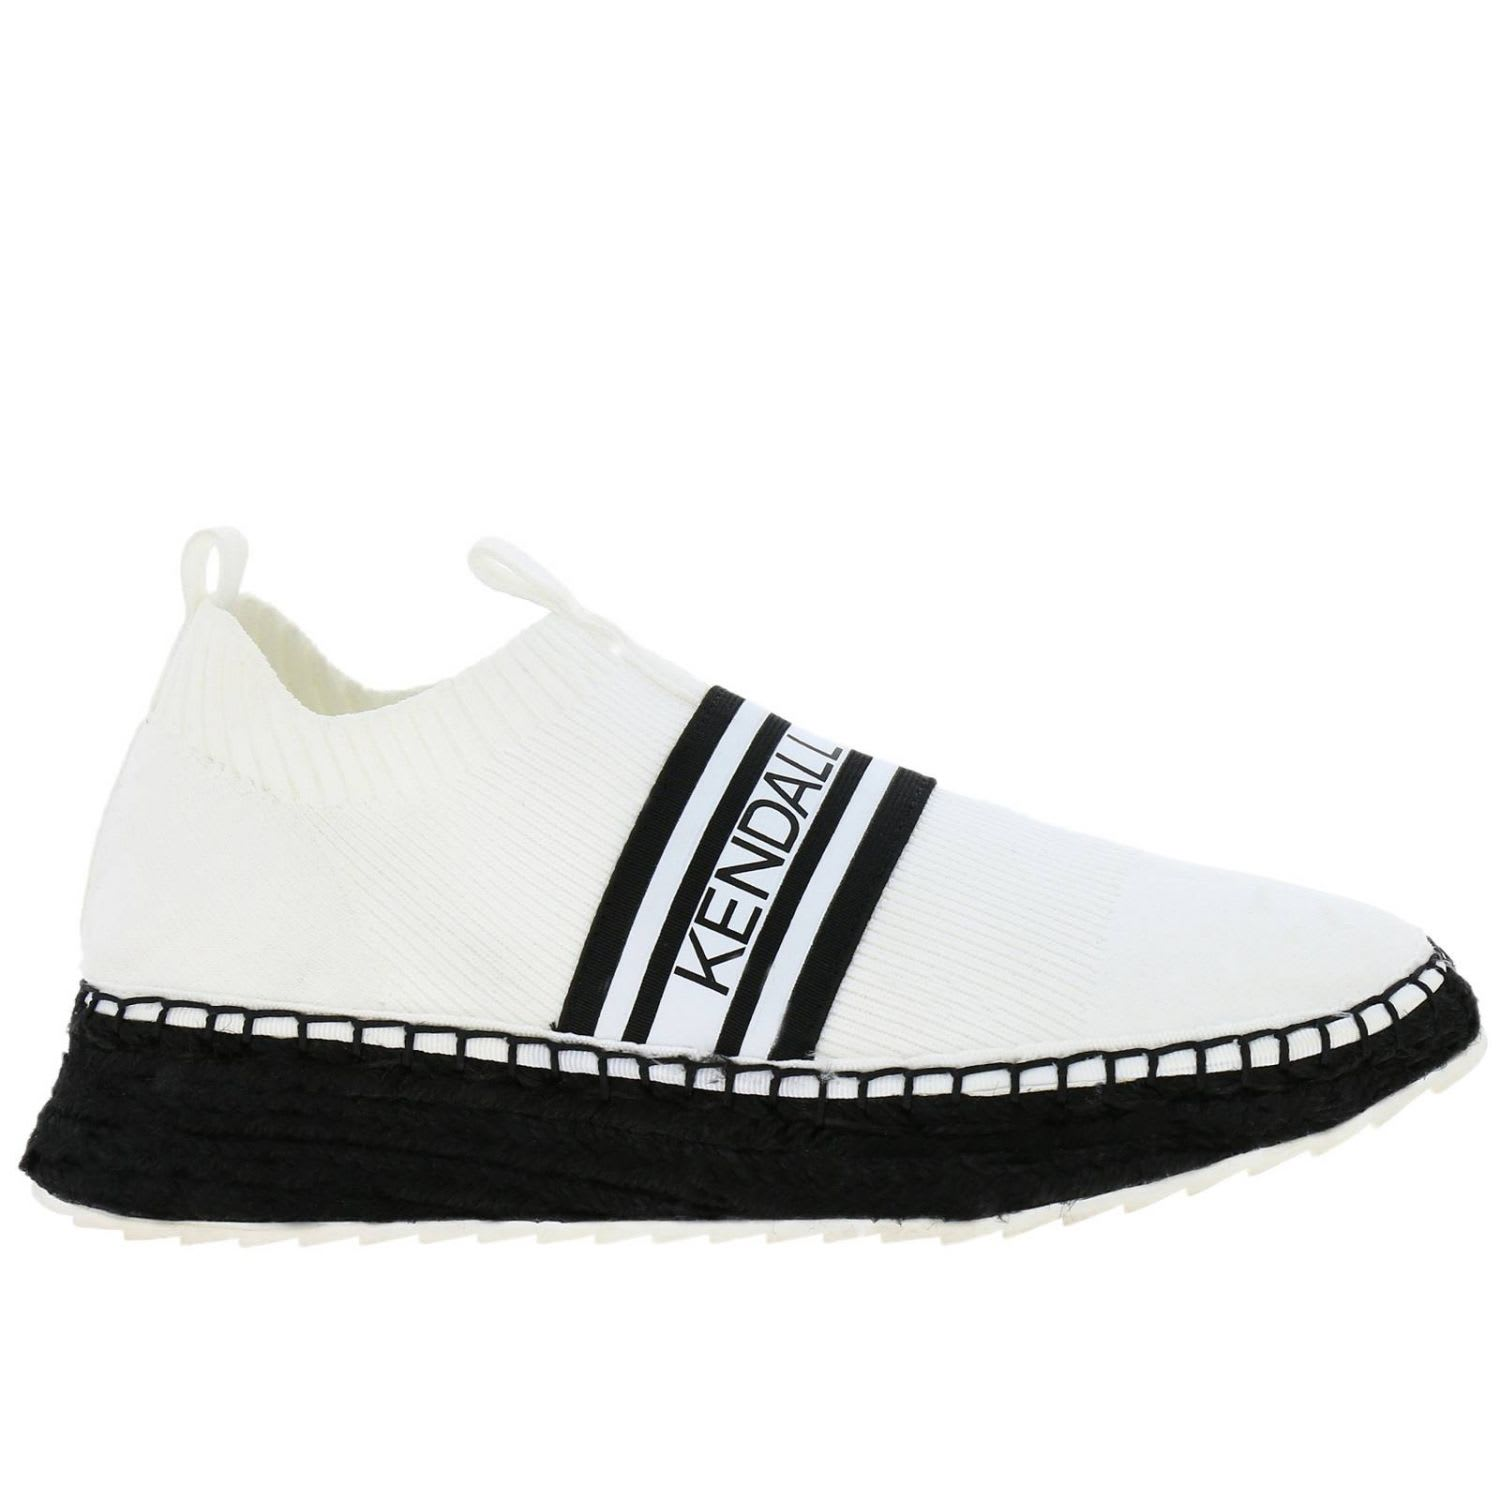 91e7f38aa Kendall + Kylie Kendall + Kylie Sneakers Shoes Women Kendall + Kylie ...